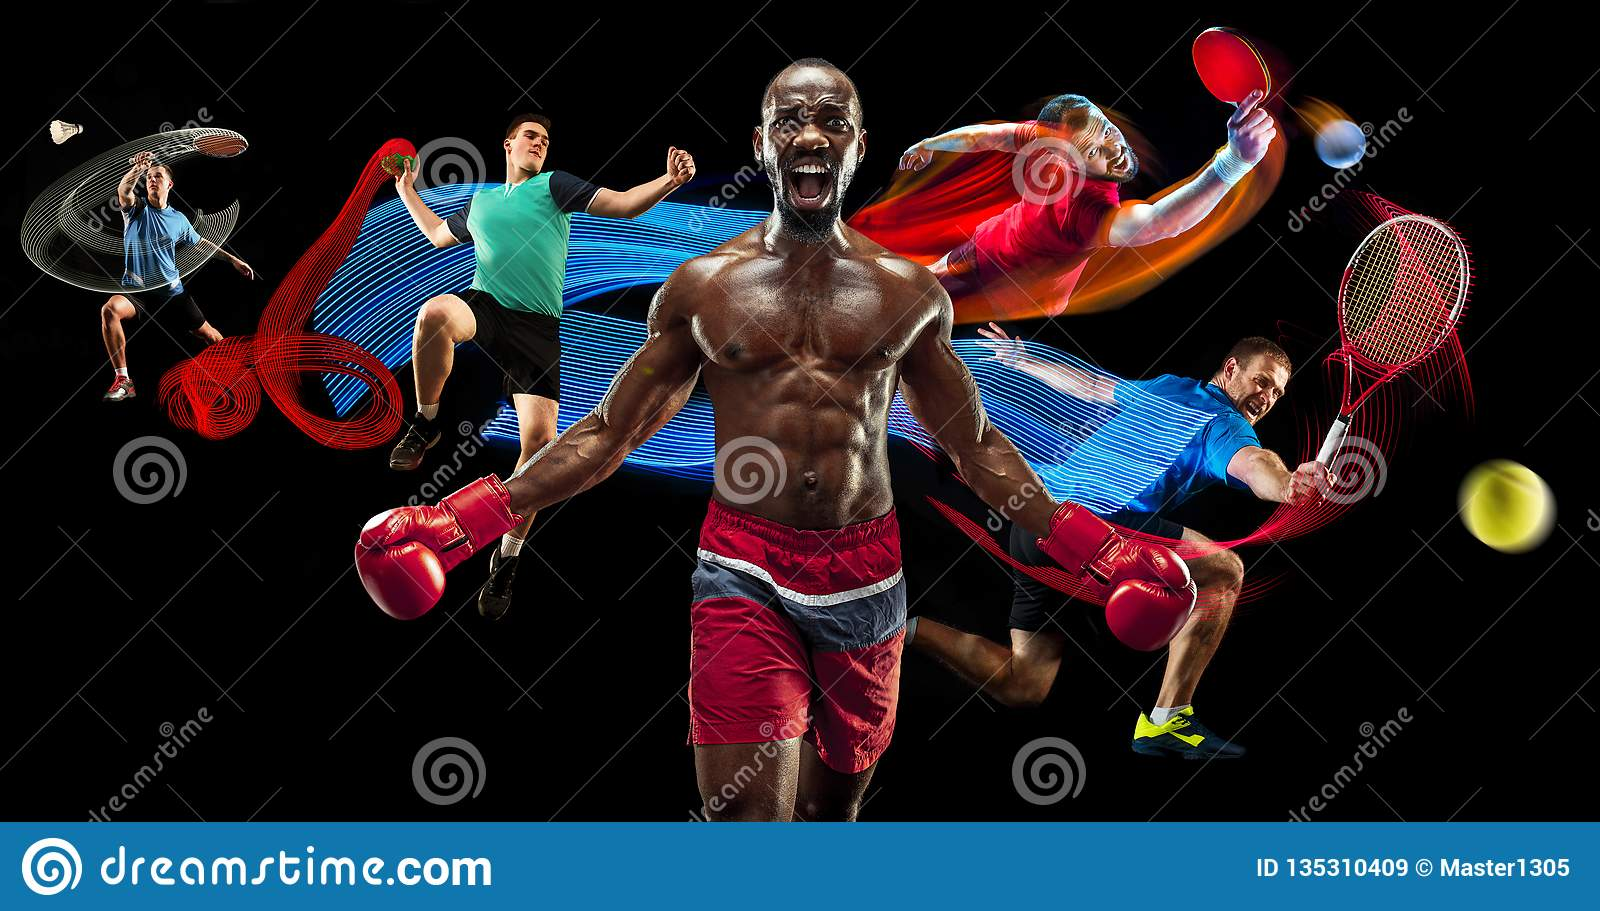 Attack. Sport collage about badminton, tennis, boxing and handball players